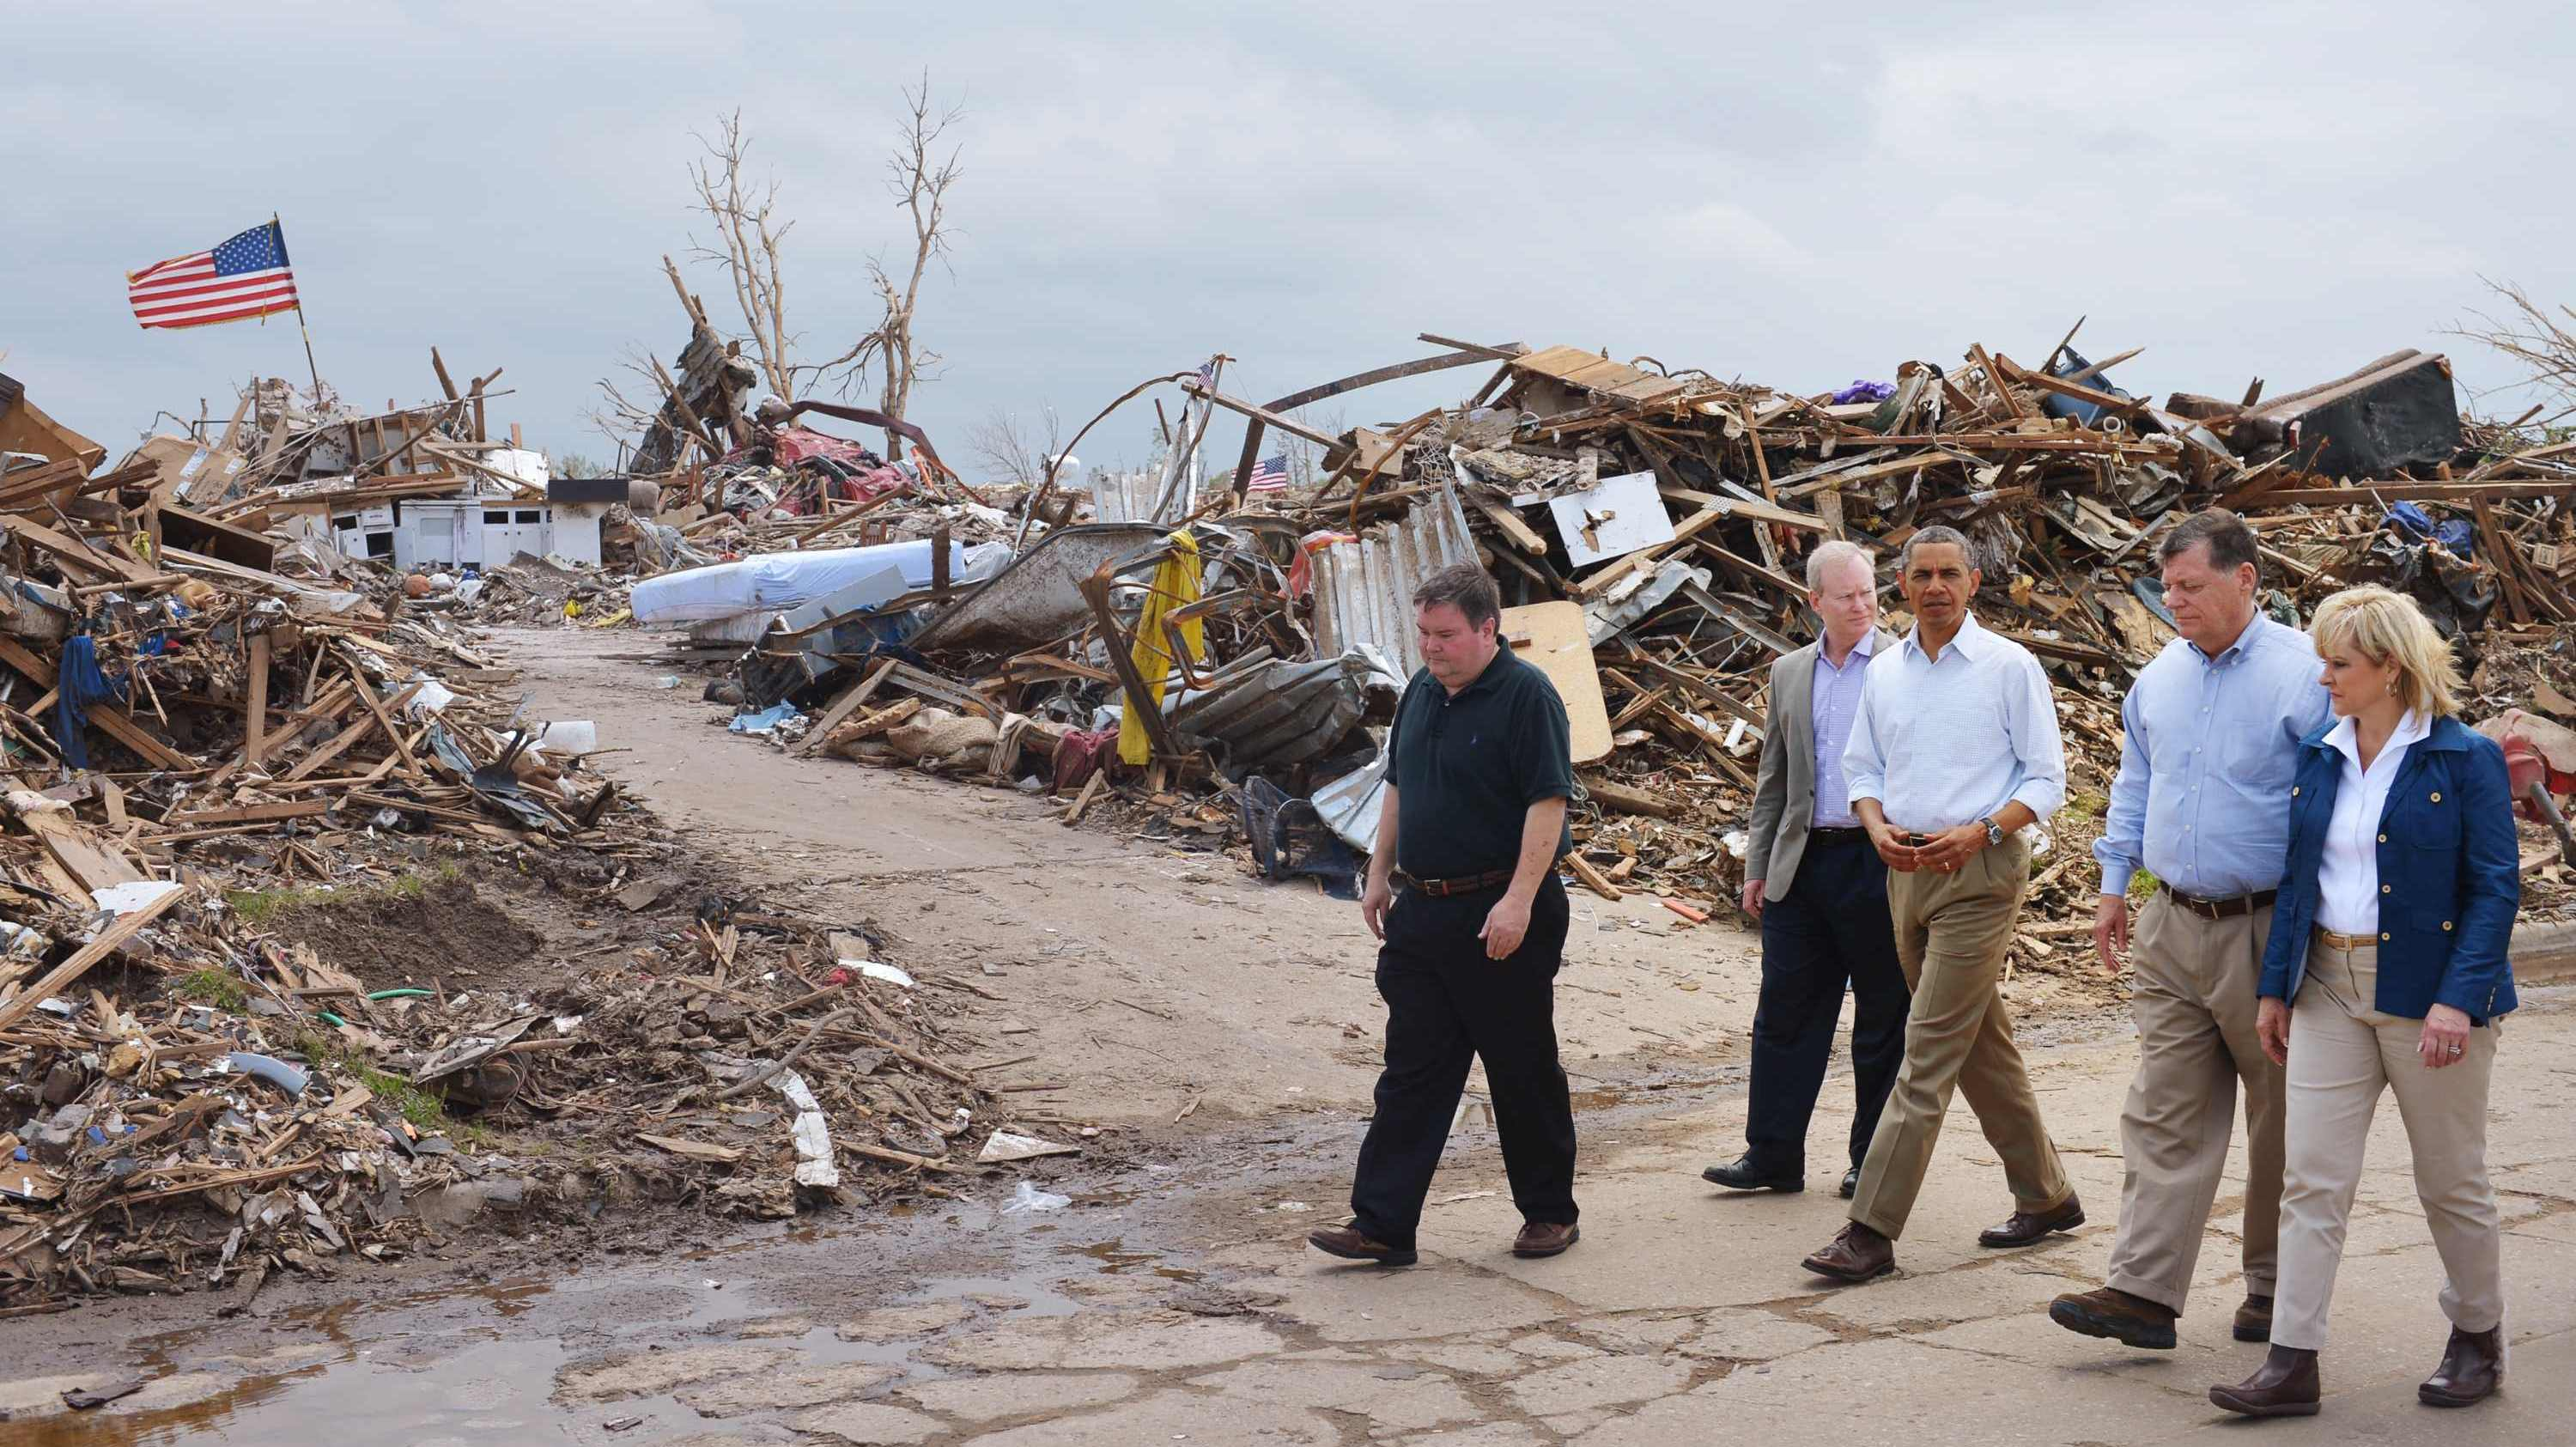 Oklahoma Rep. Tom Cole (second from right) surveys the tornado damage in Moore, Okla., on May 26 with a delegation including President Obama, Gov. Mary Fallin and Moore Mayor Glenn Lewis (far left).